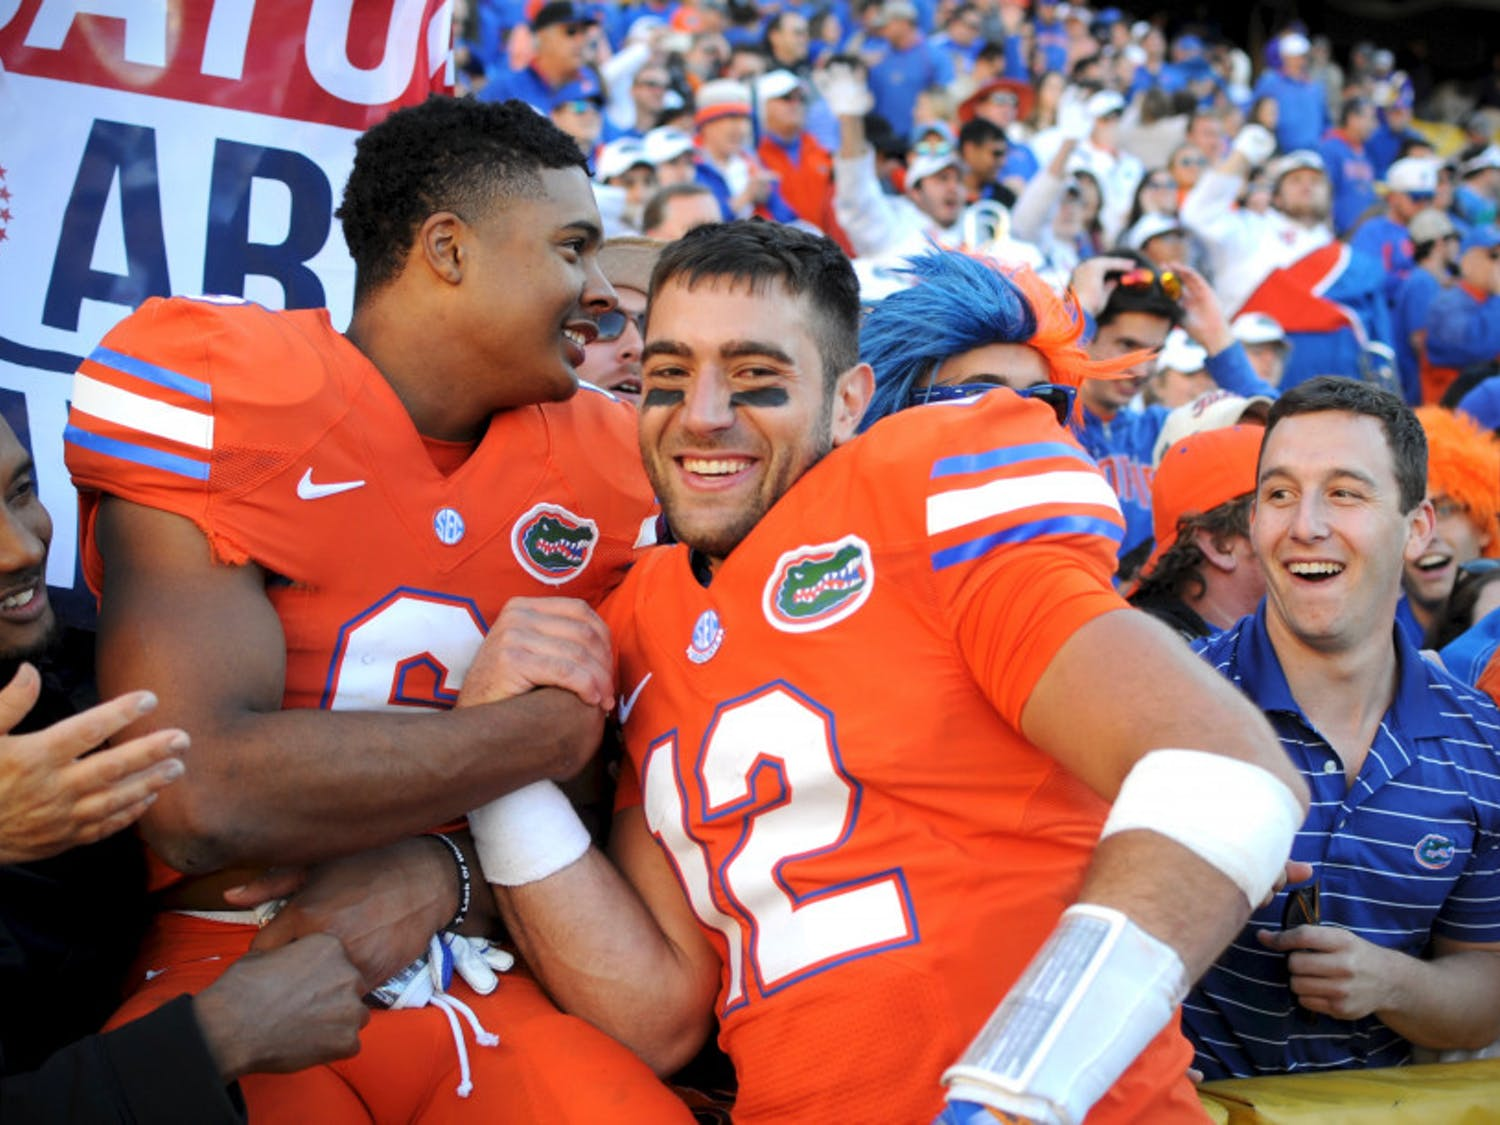 Austin Appleby, right, celebrates with Quincy Wilson after Florida's 16-10 win against LSU on Nov. 19, 2016, at Tiger Stadium in Baton Rouge, Louisiana.